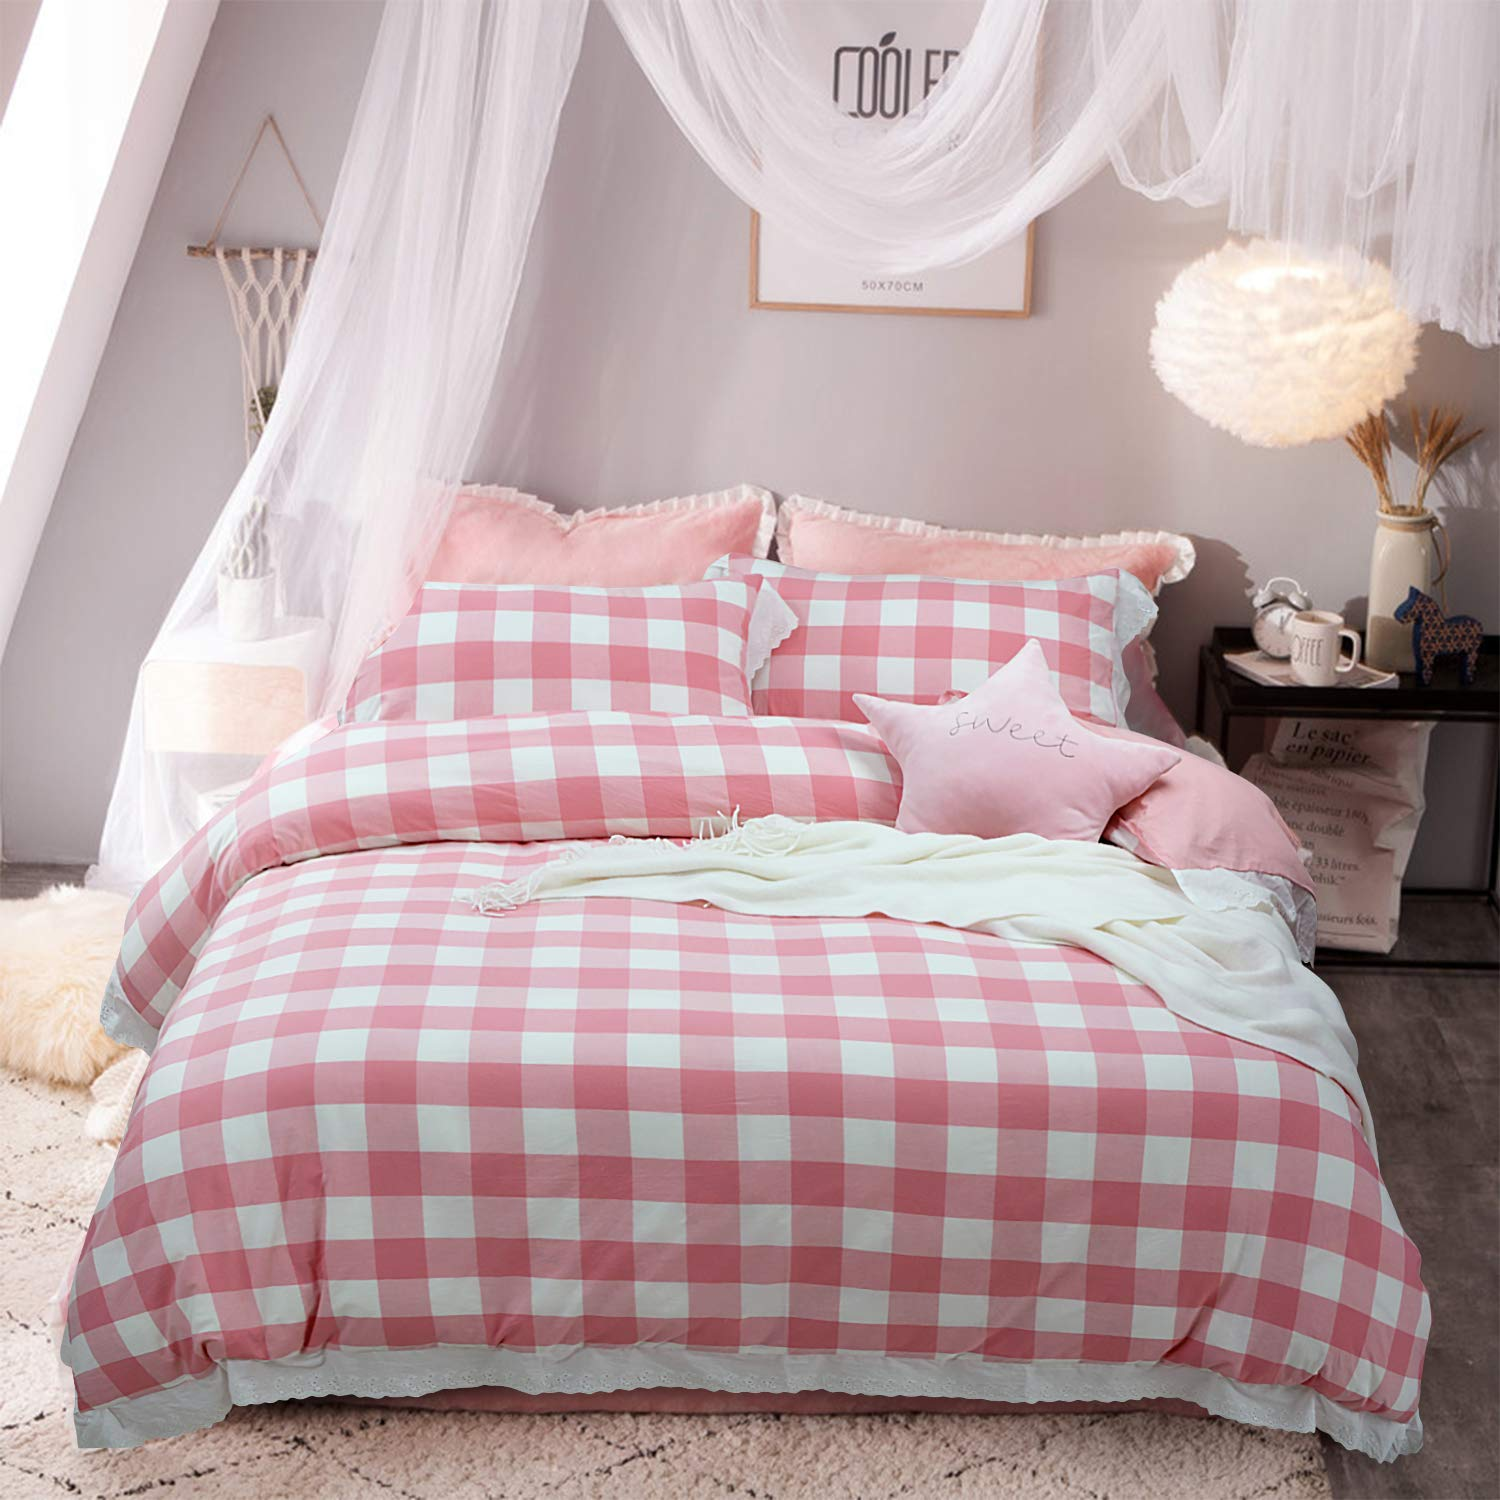 Softta Vintage Ruffle Buffalo Plaid Bedding Set 3 pcs 100% Pure Natural Yarn Dyed Washed Cotton 1 Duvet Cover + 2 Pillowcases Check Pattern White and Pink Queen Size